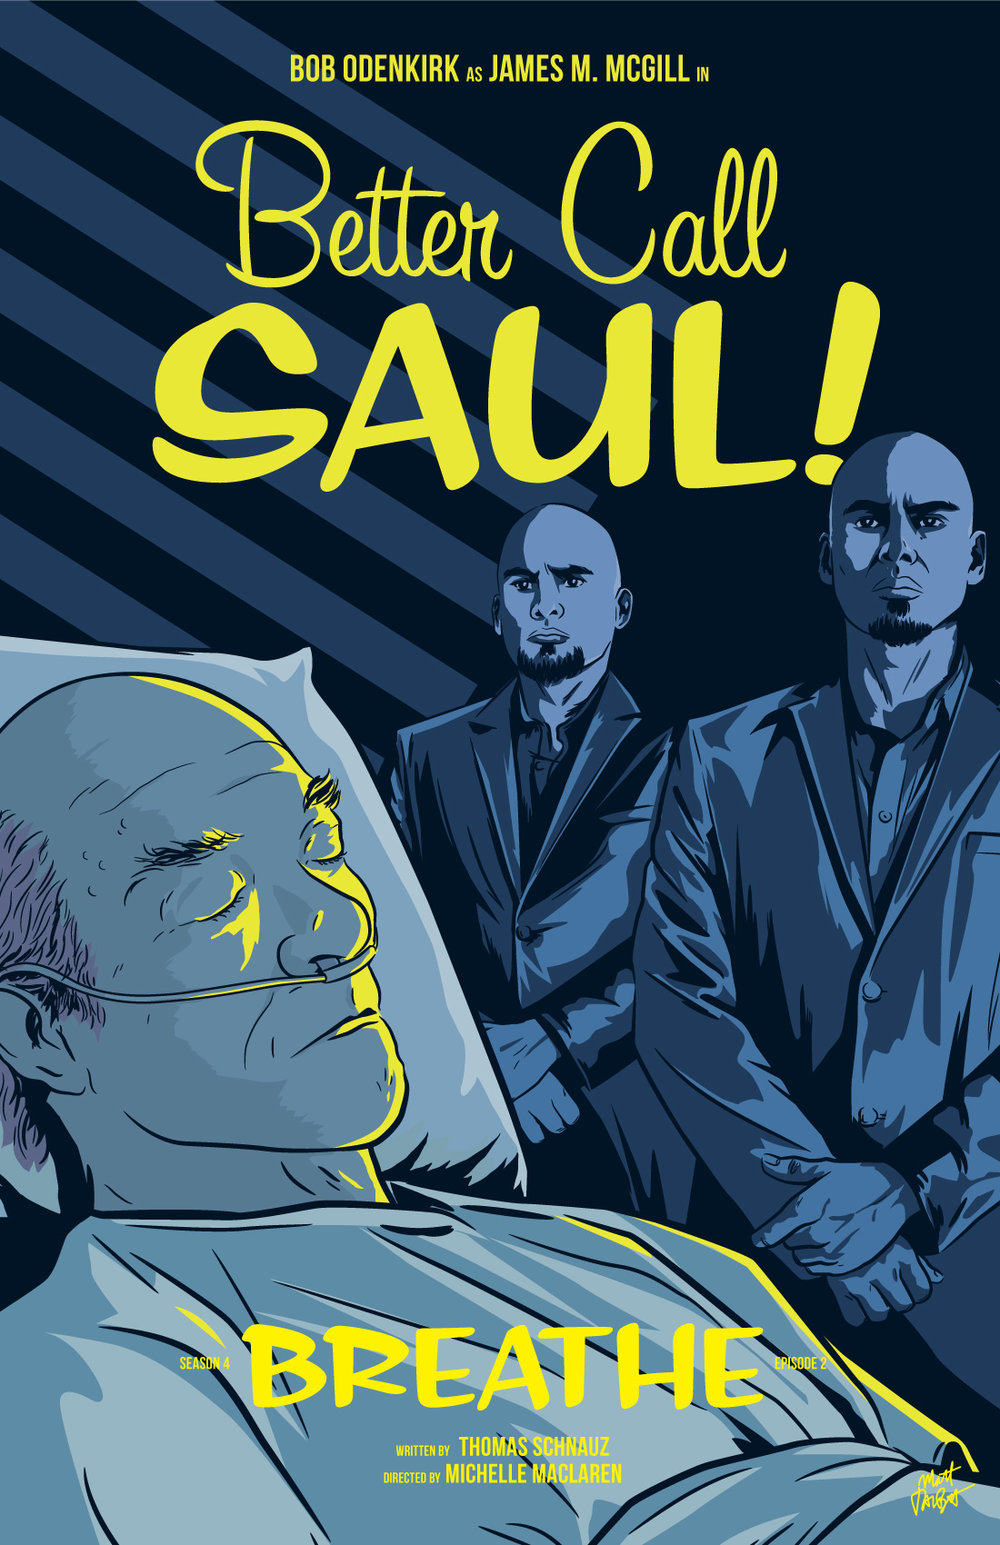 Better Call Saul season 4 episode 2 poster, Breathe, by Matt Talbot